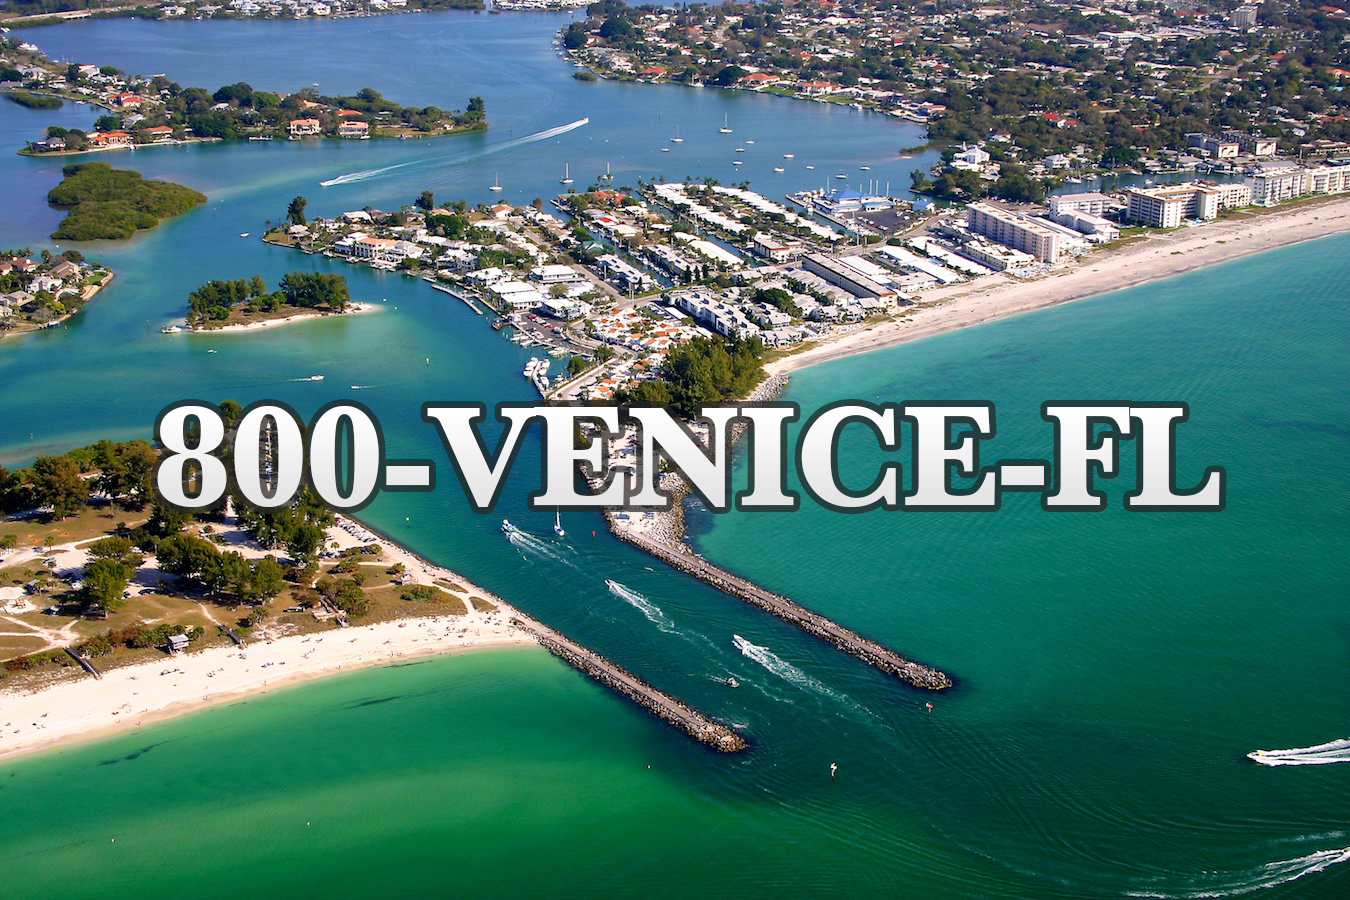 Venice Florida Jetty aerial view using 1-800-VENICE-FL